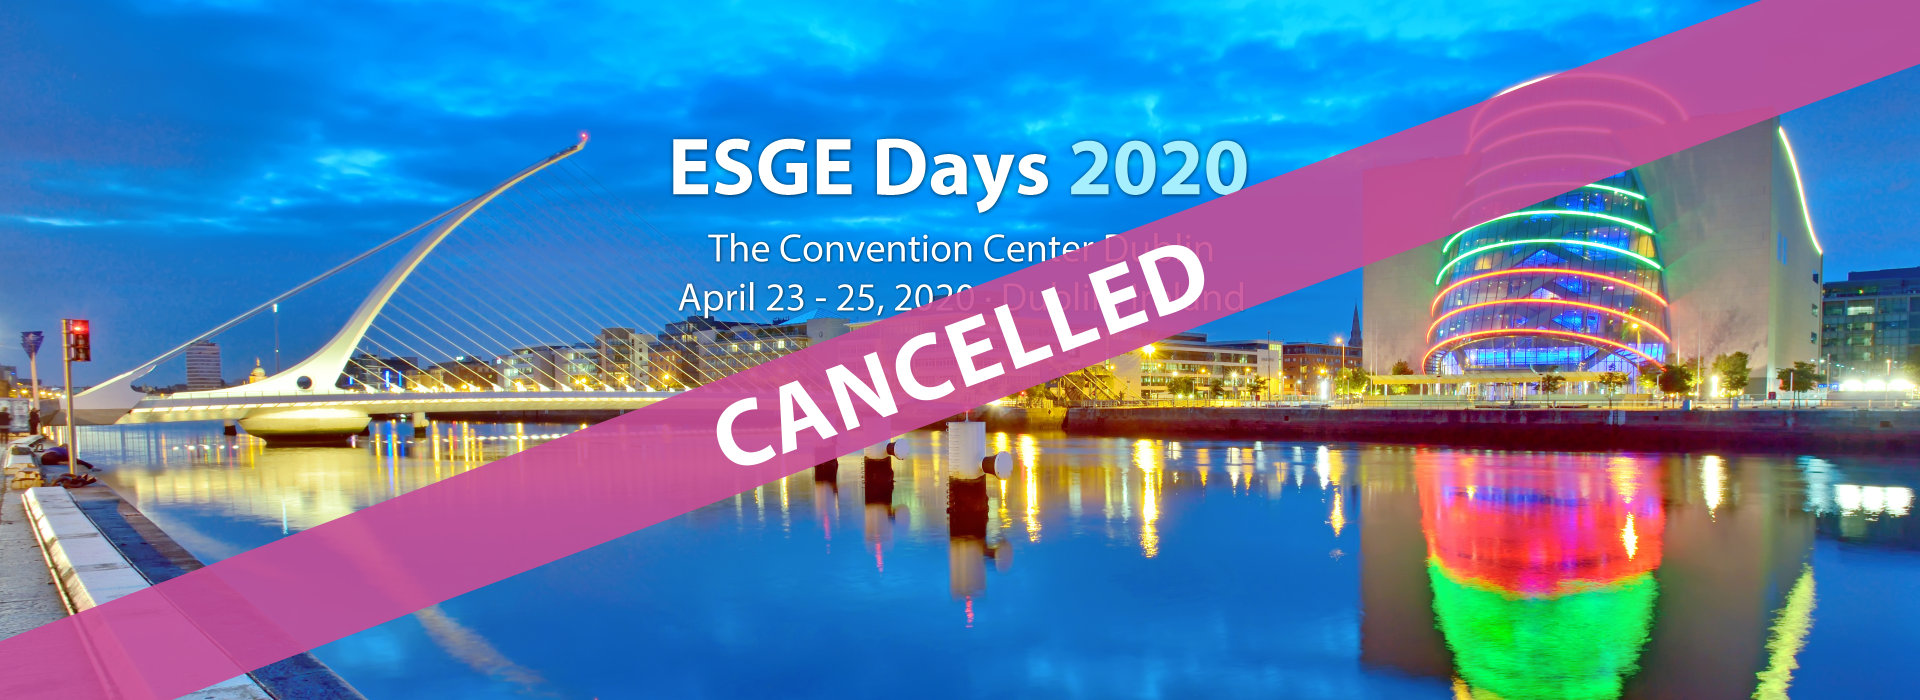 ESGE Days 2020 - cancelled